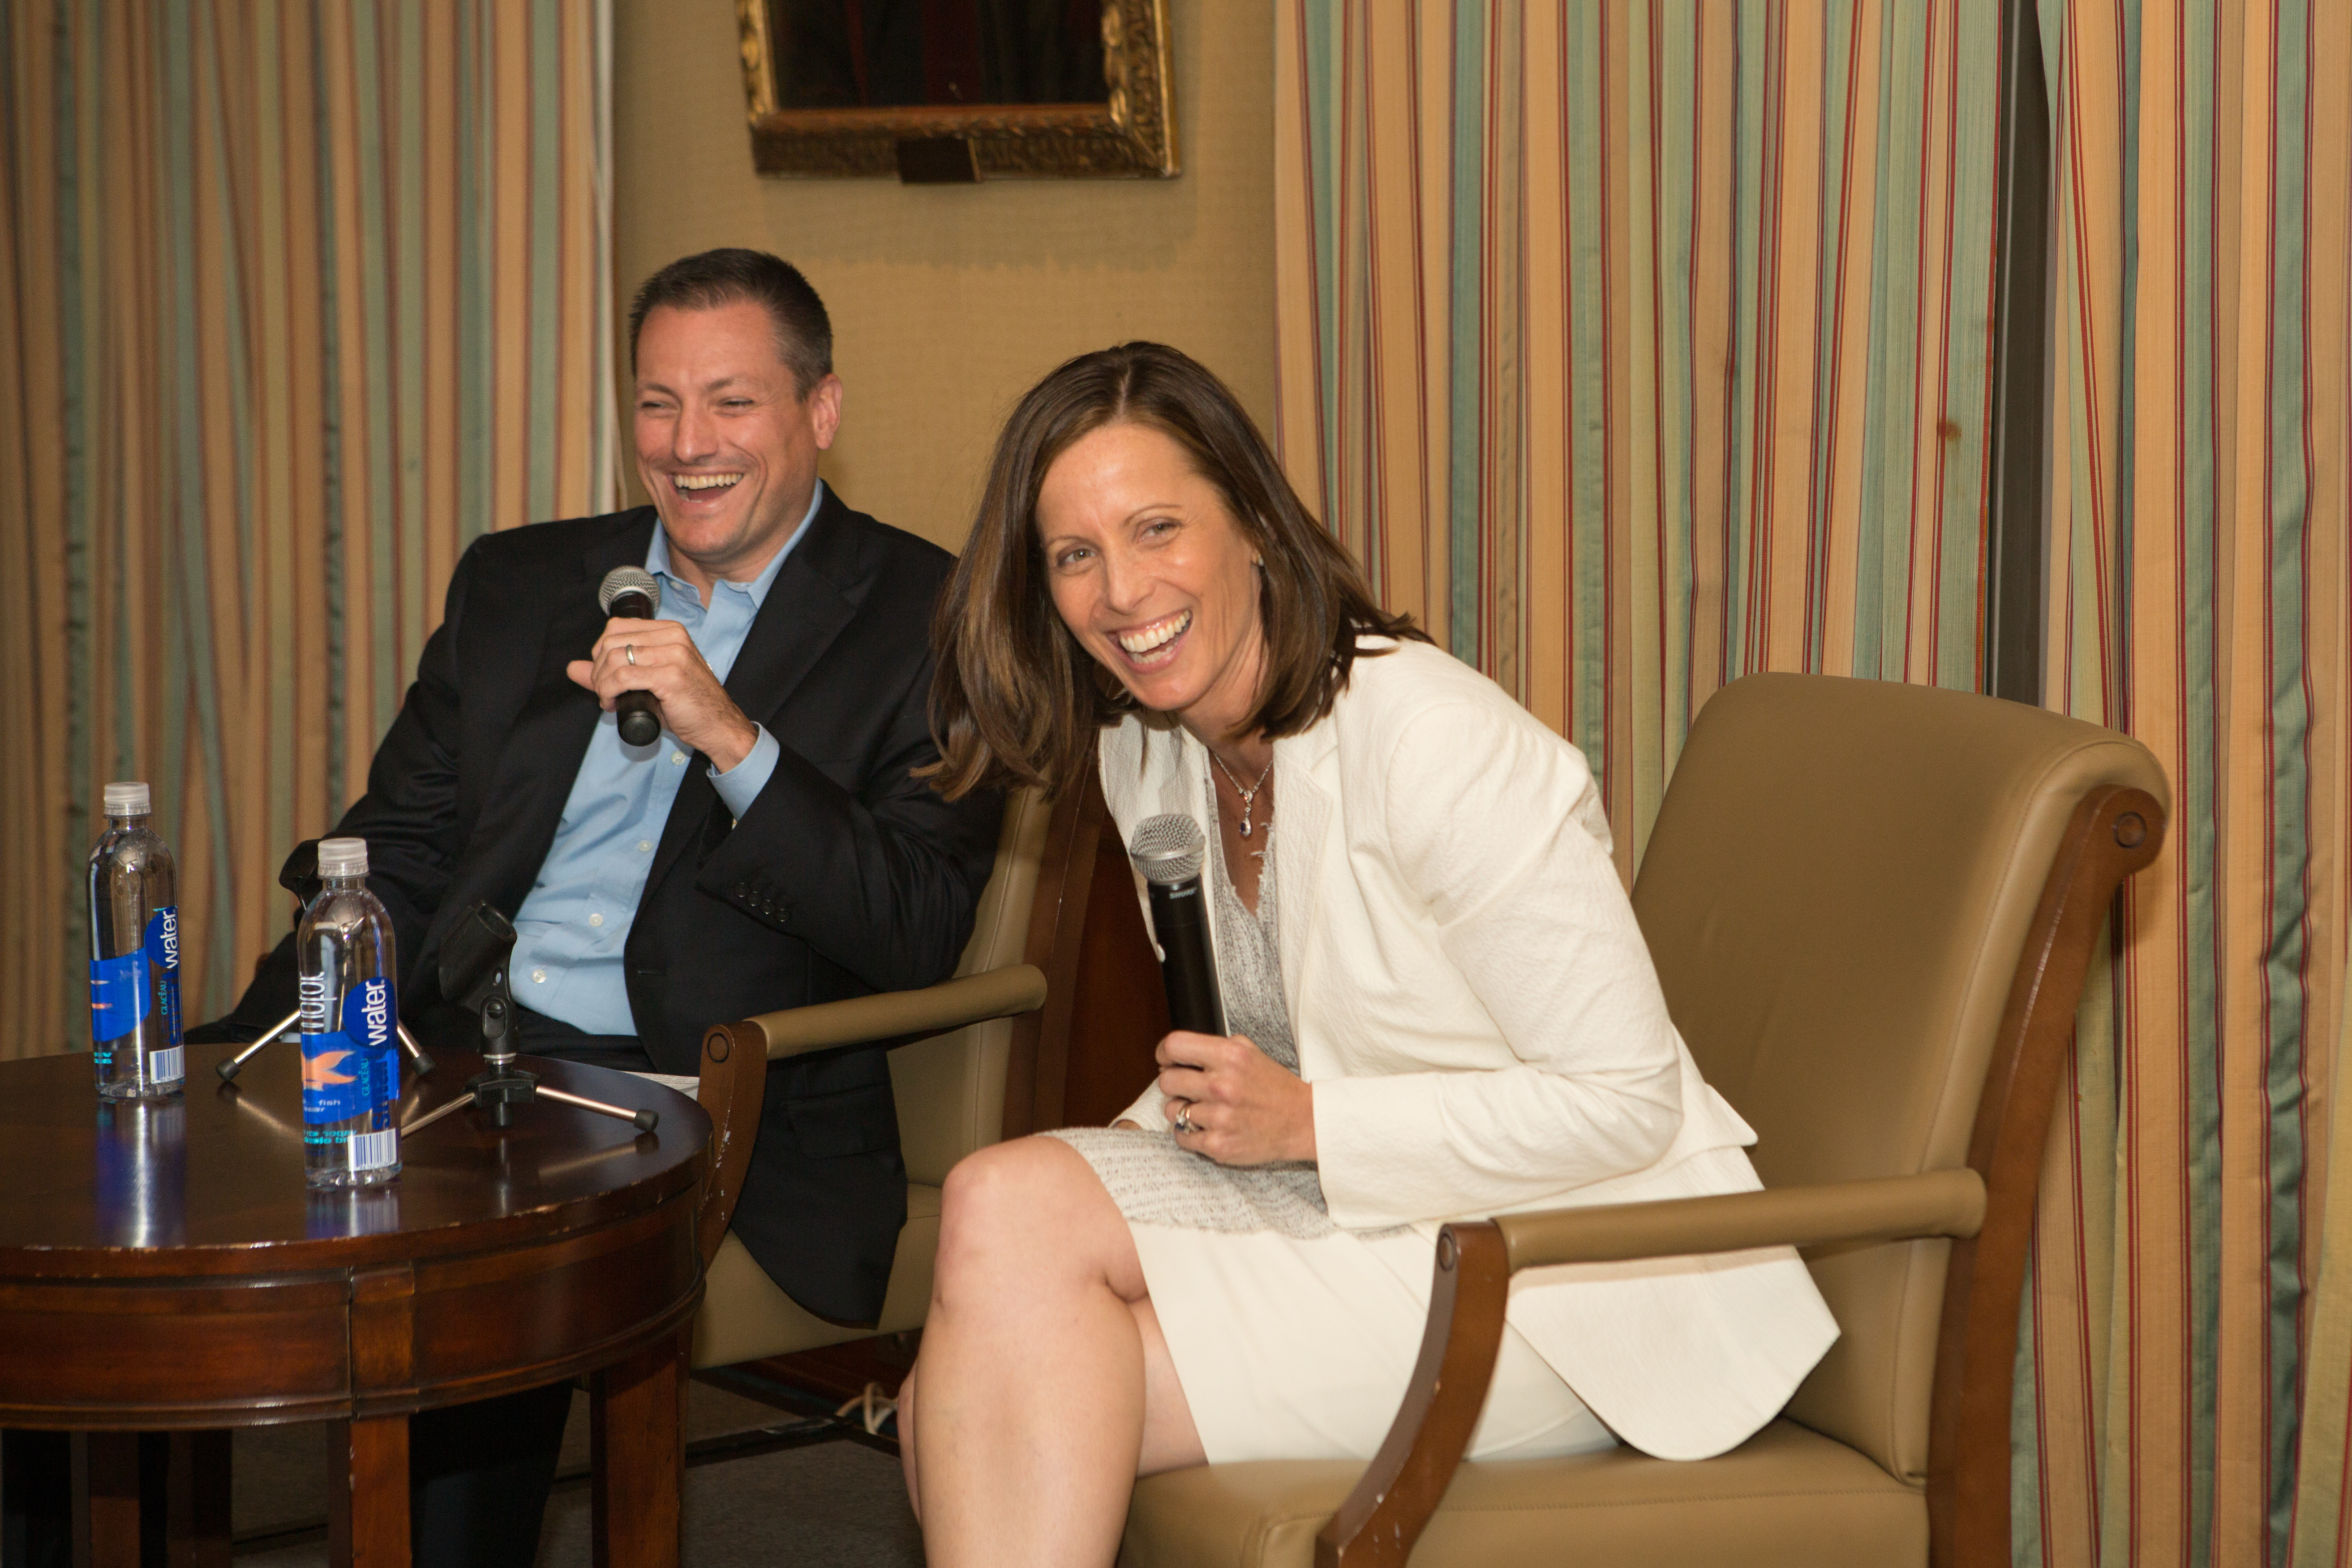 President of the Williams Club, Tom Morgan '91 & President/CEO of NASDAQ, Adena Friedman '91